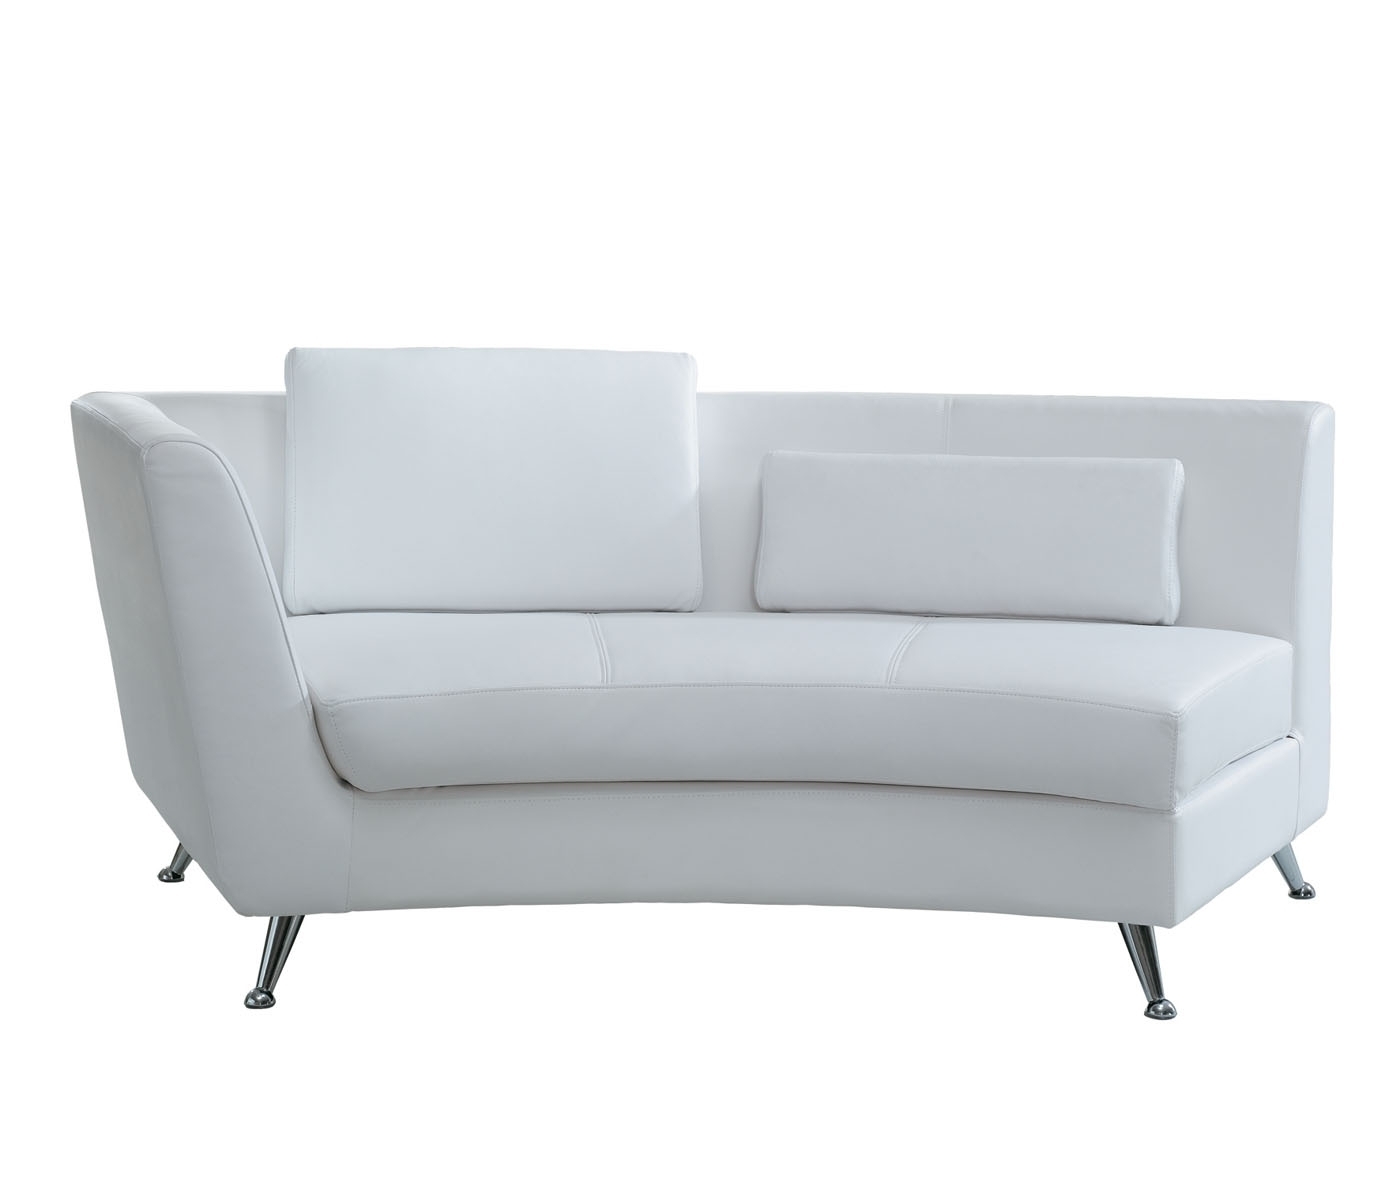 Most Recent White Leather Chaise Lounges Throughout Decoration In White Leather Chaise Lounge With White Leather (View 11 of 15)